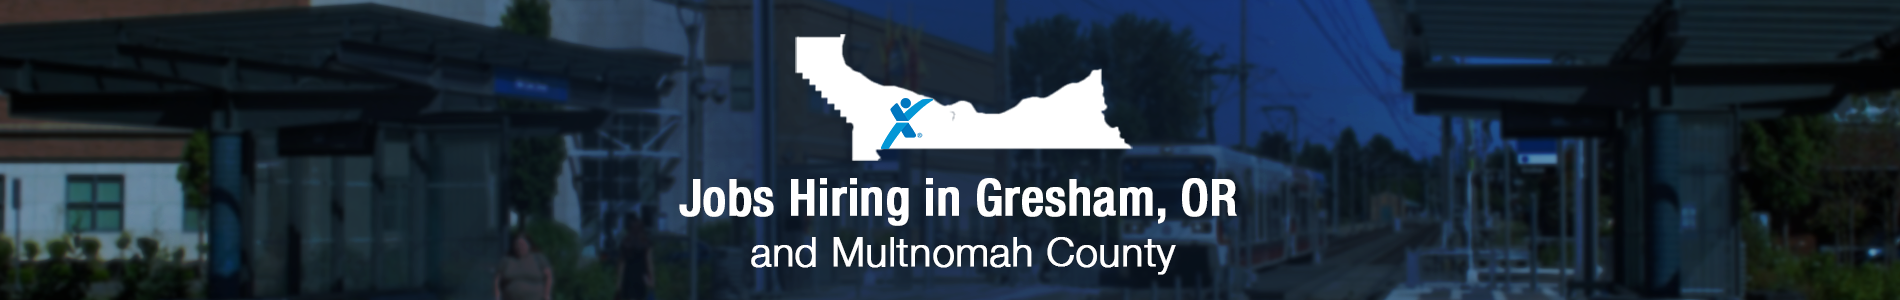 Jobs in Gresham, OR - Apply today!